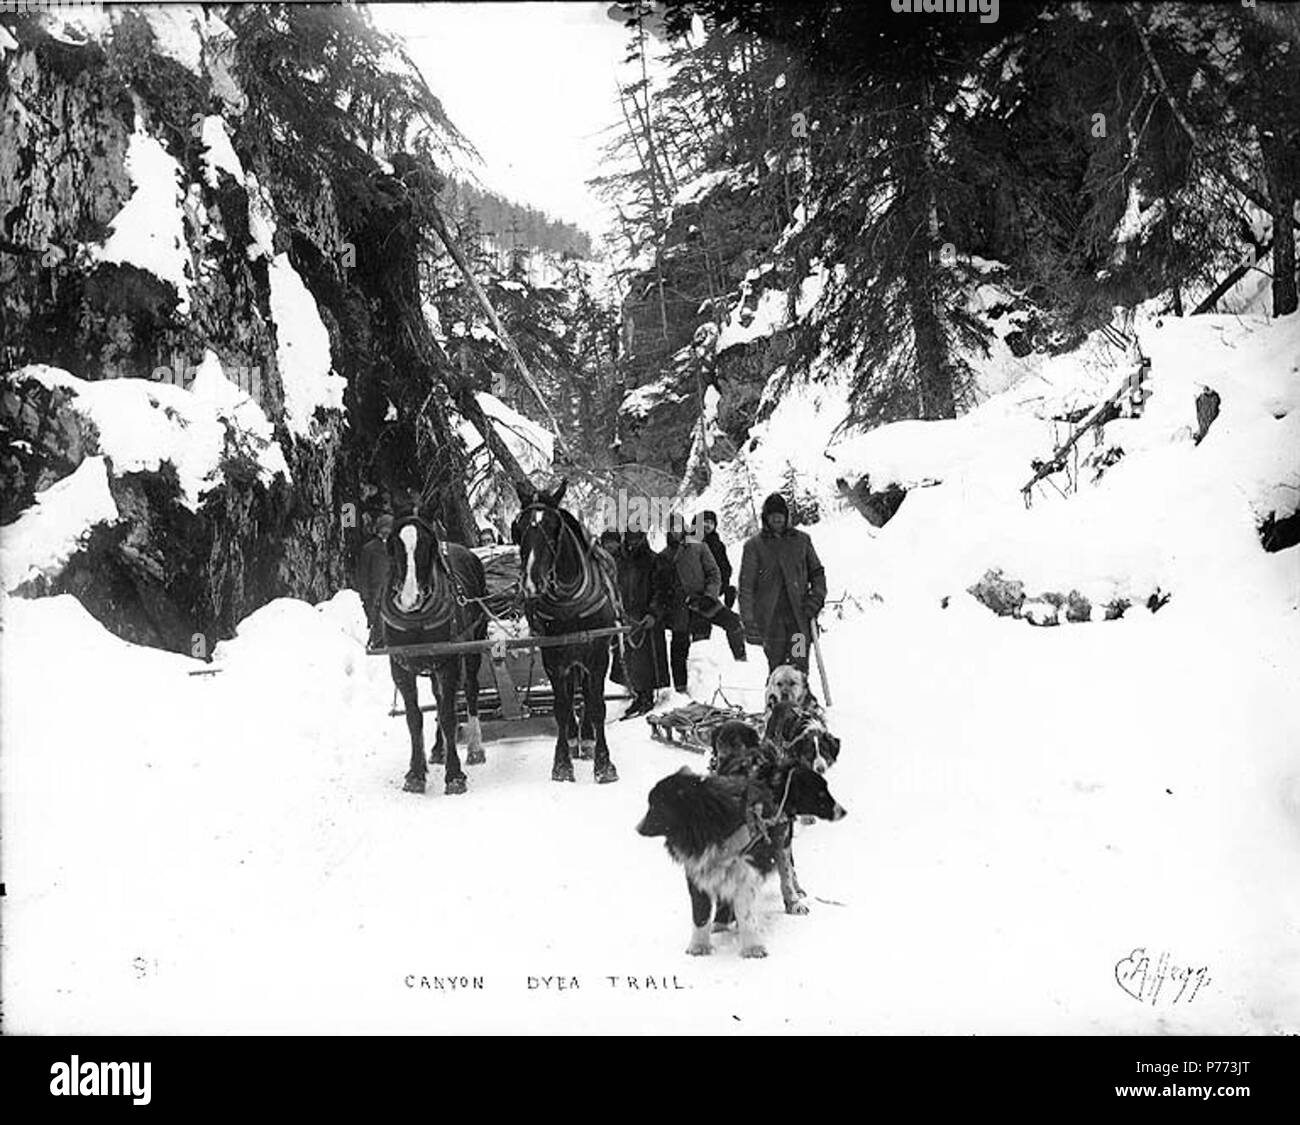 . English: Klondikers with horse drawn sled and dogsled at Canyon, Chilkoot Trail, Alaska, 1897. English: Caption on image: 'Canyon Dyea Trail' Original image in Hegg Album 1, page 14 . Klondike Gold Rush. Subjects (LCTGM): Canyons--Alaska--Chilkoot Trail; Sled dogs--Alaska--Chilkoot Trail; Sleds & sleighs--Alaska--Chilkoot Trail; Horses--Alaska--Chilkoot Trail Subjects (LCSH): Chilkoot Trail; Trails--Alaska  . 1897 7 Klondikers with horse drawn sled and dogsled at Canyon, Chilkoot Trail, Alaska, 1897 (HEGG 7) - Stock Image